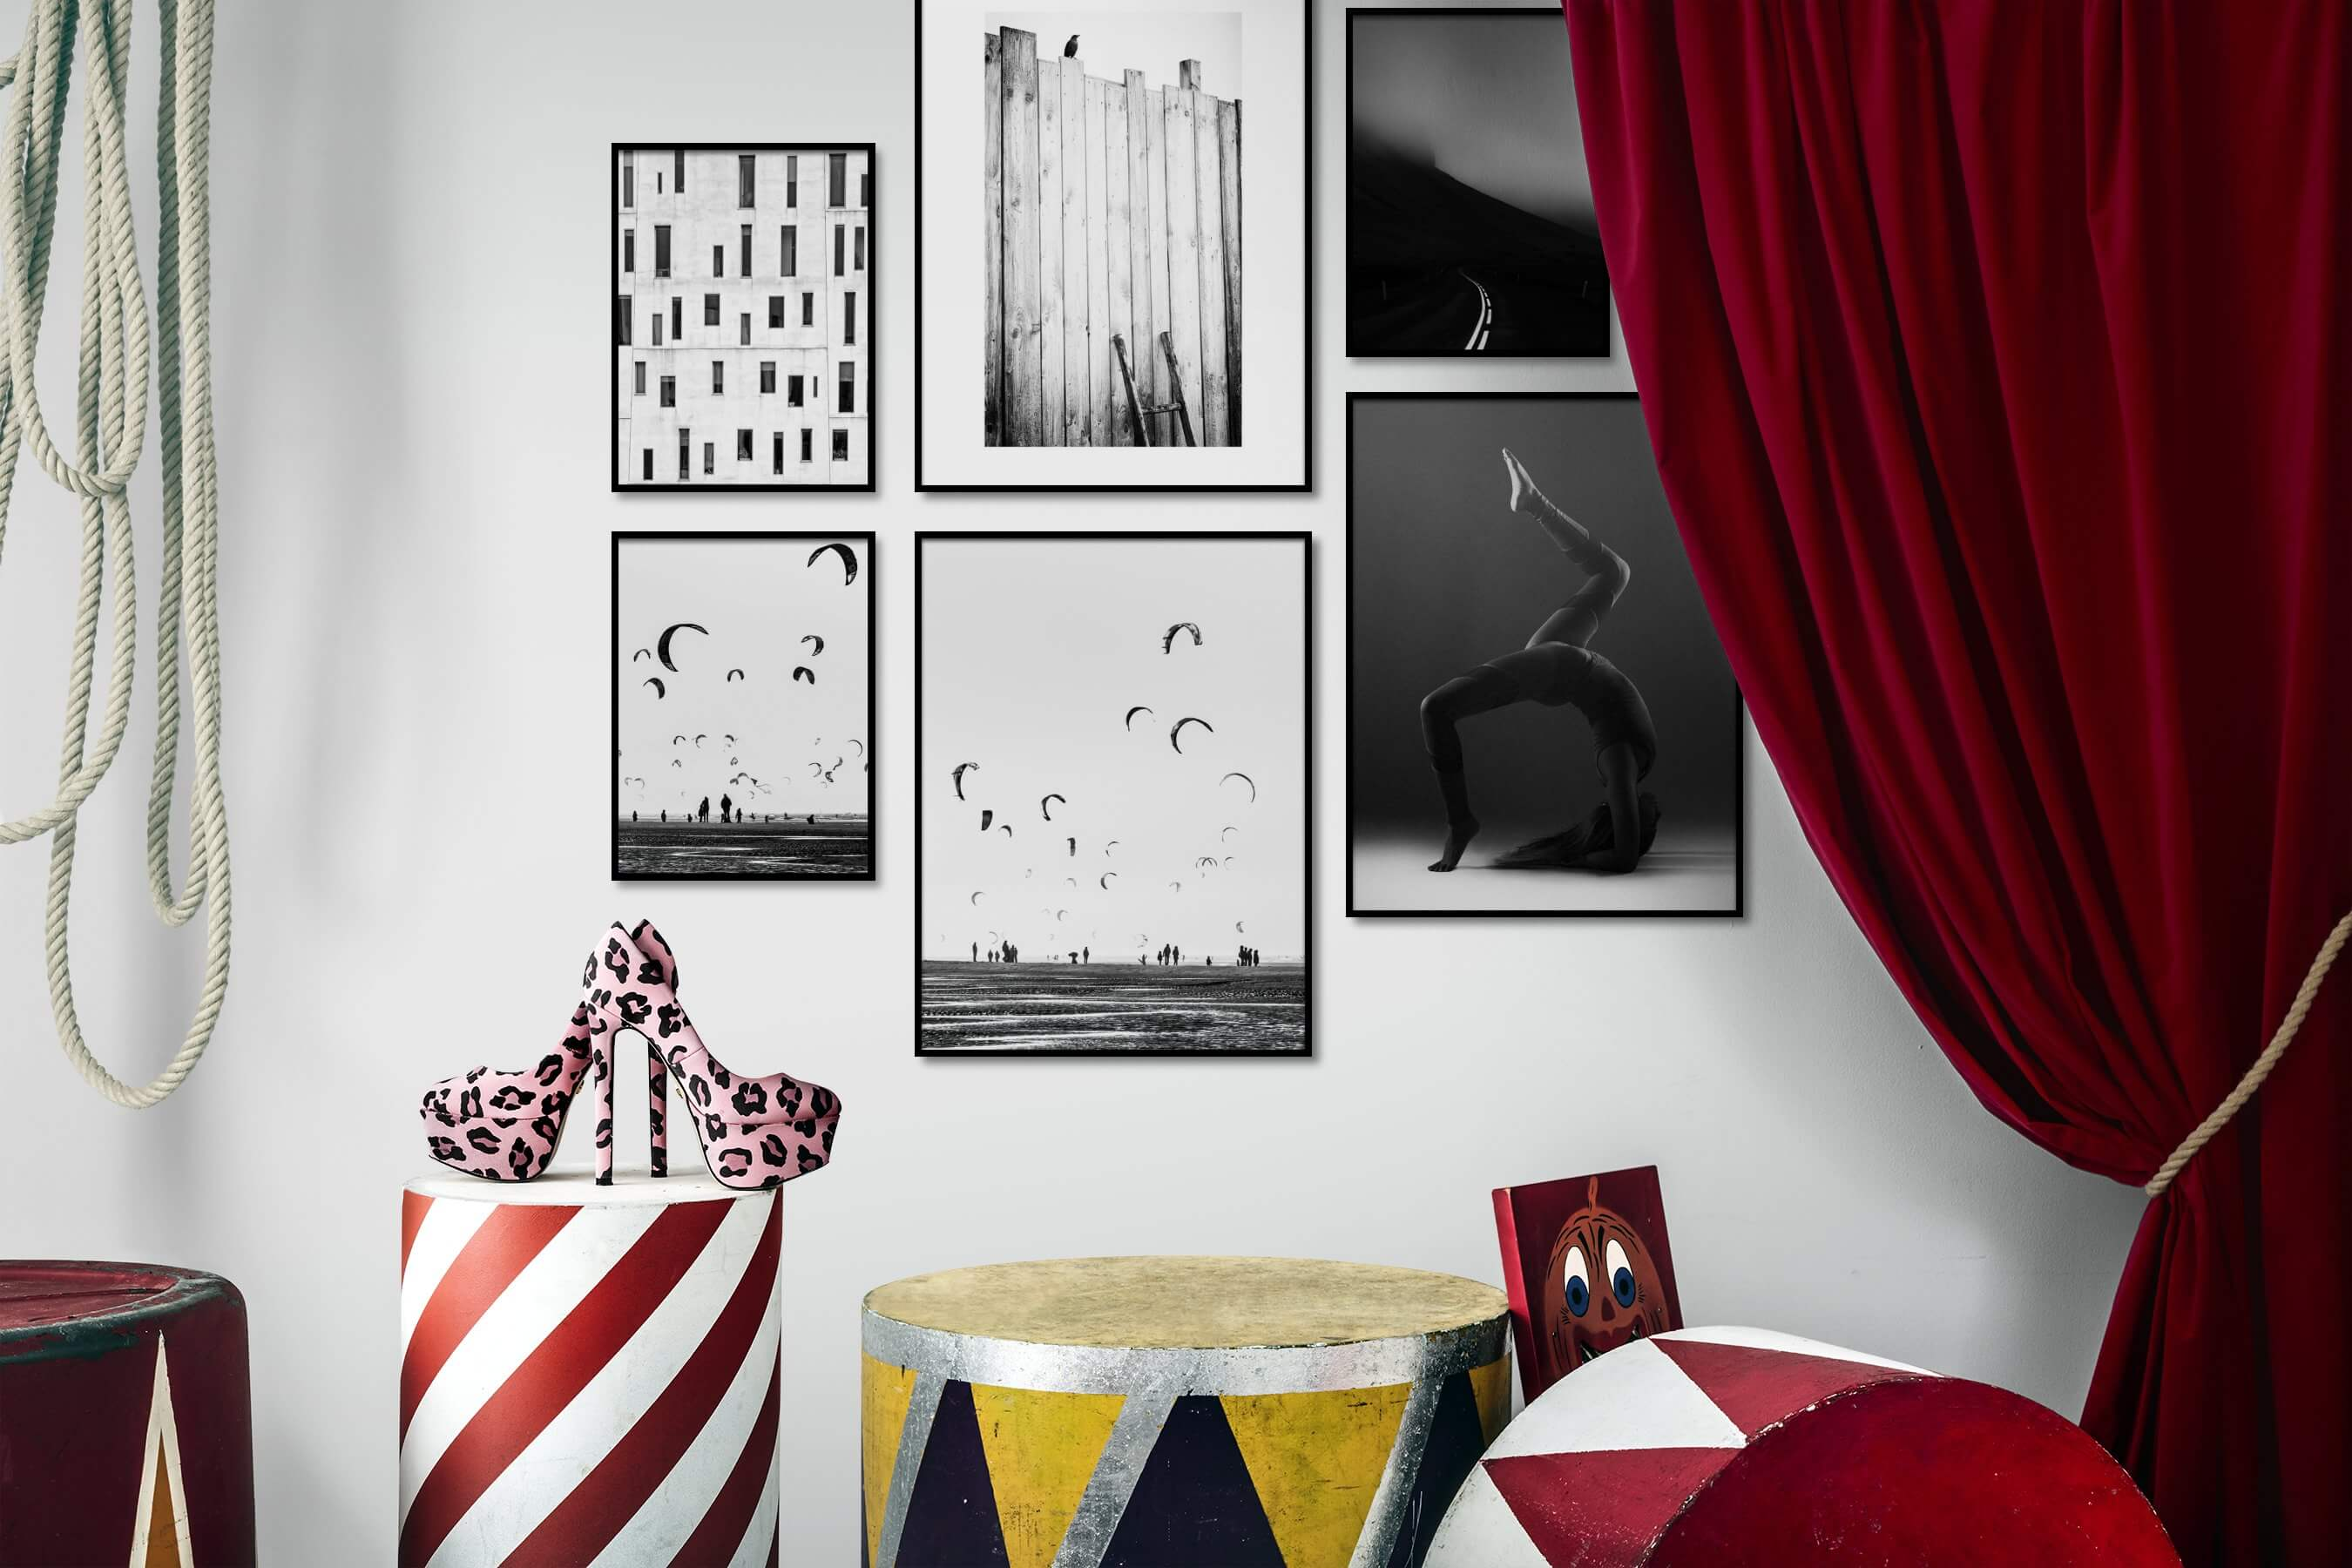 Gallery wall idea with six framed pictures arranged on a wall depicting For the Moderate, City Life, Black & White, For the Minimalist, Beach & Water, Country Life, and Fashion & Beauty